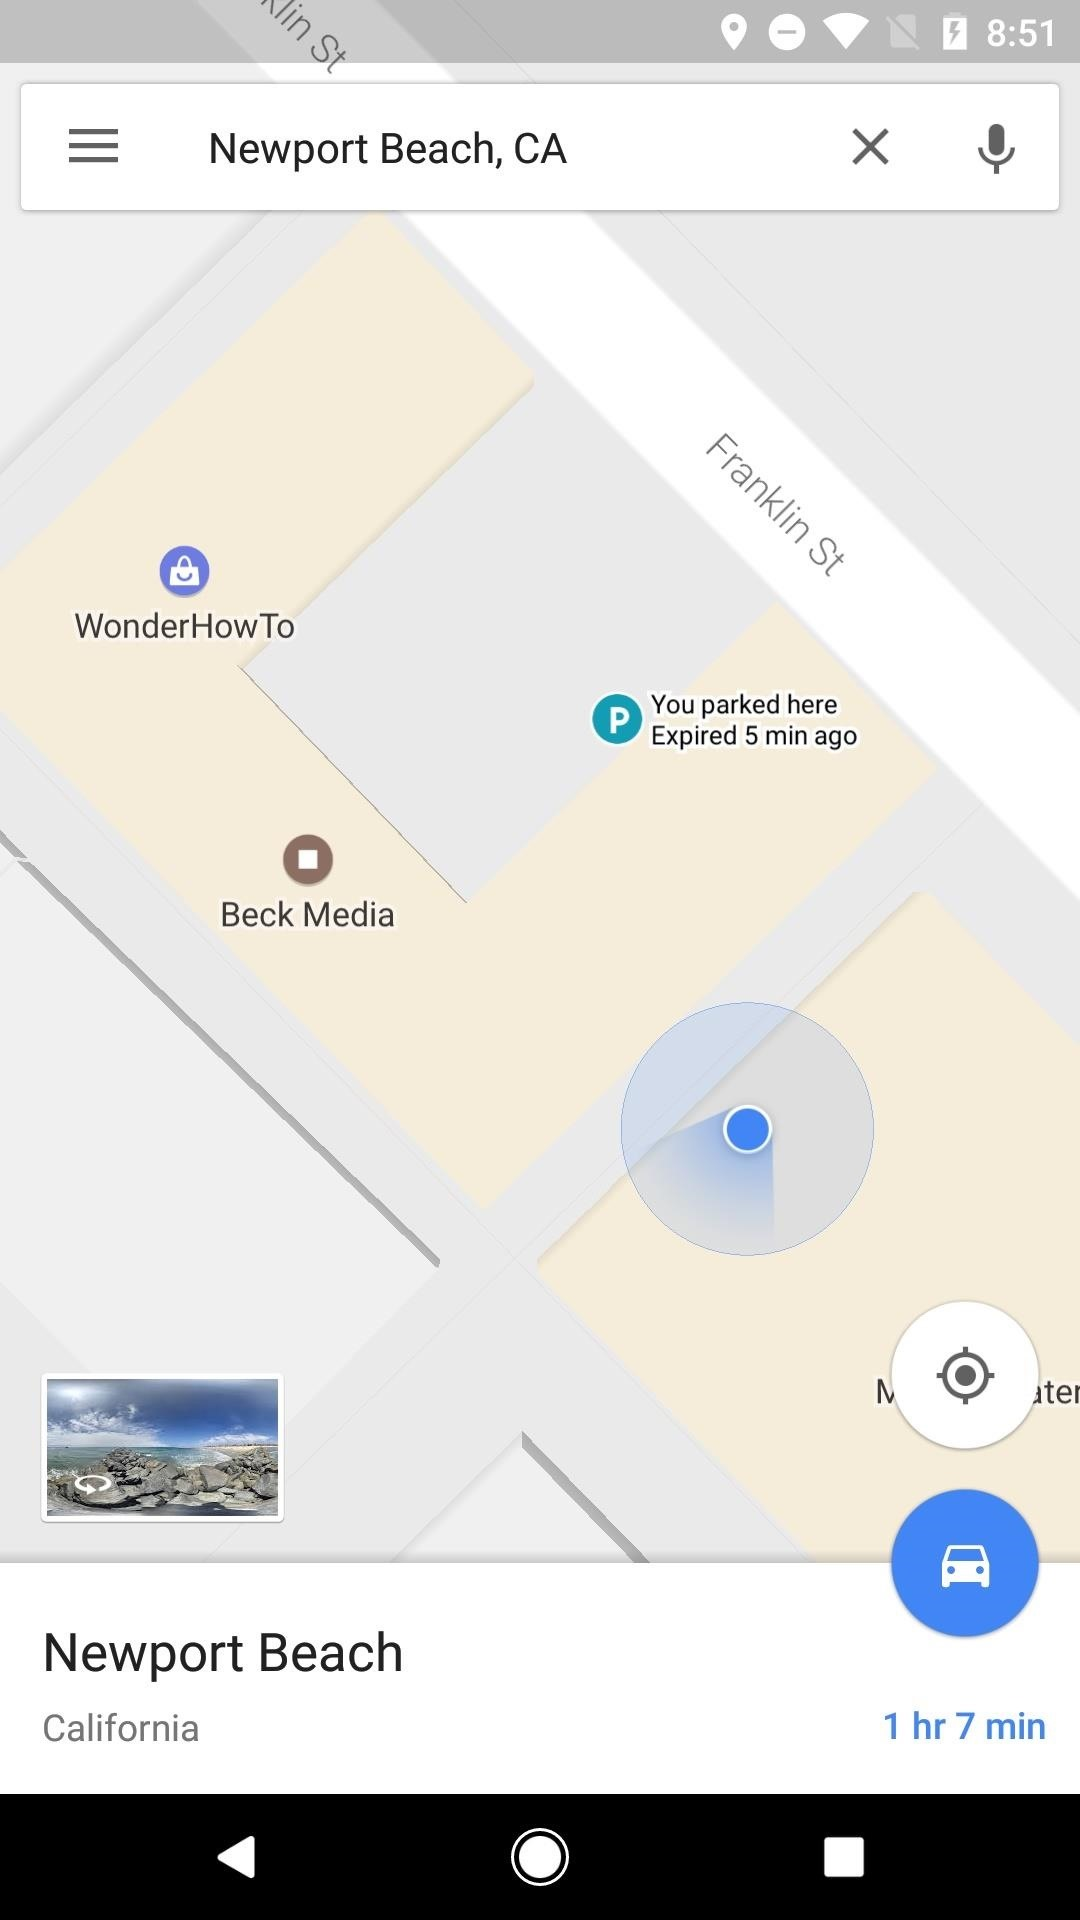 Google Maps V9.49 Beta Gets a Manual Parking Location Tracker & Weather Indicator